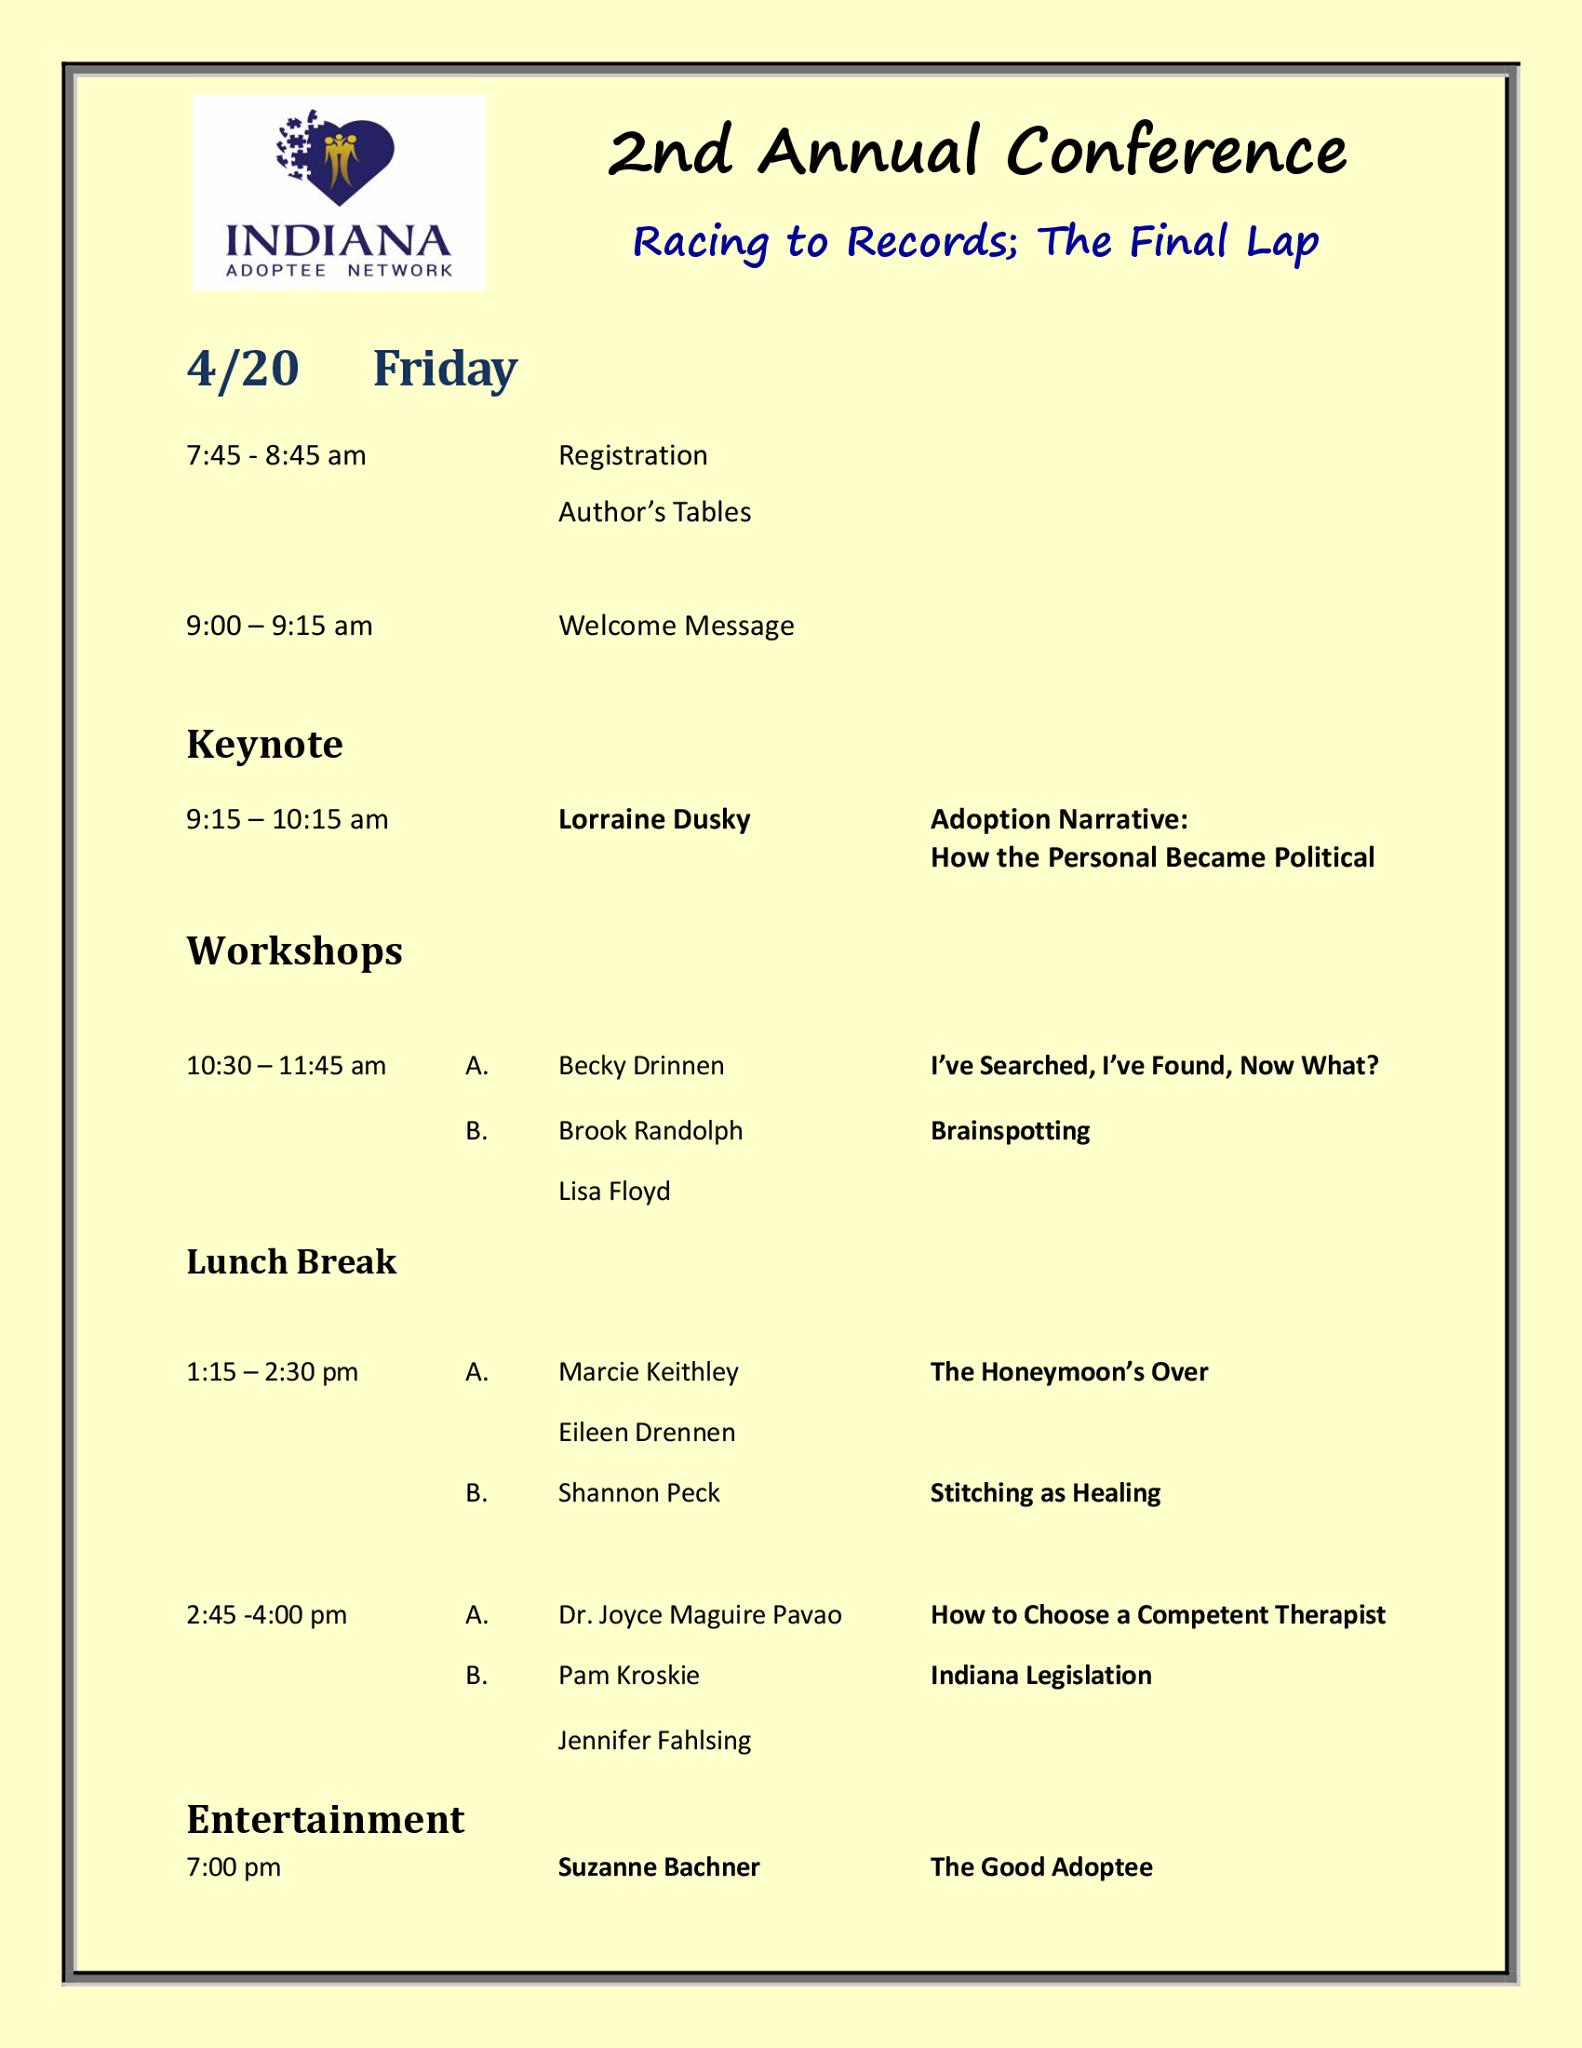 Friday Conference Schedule